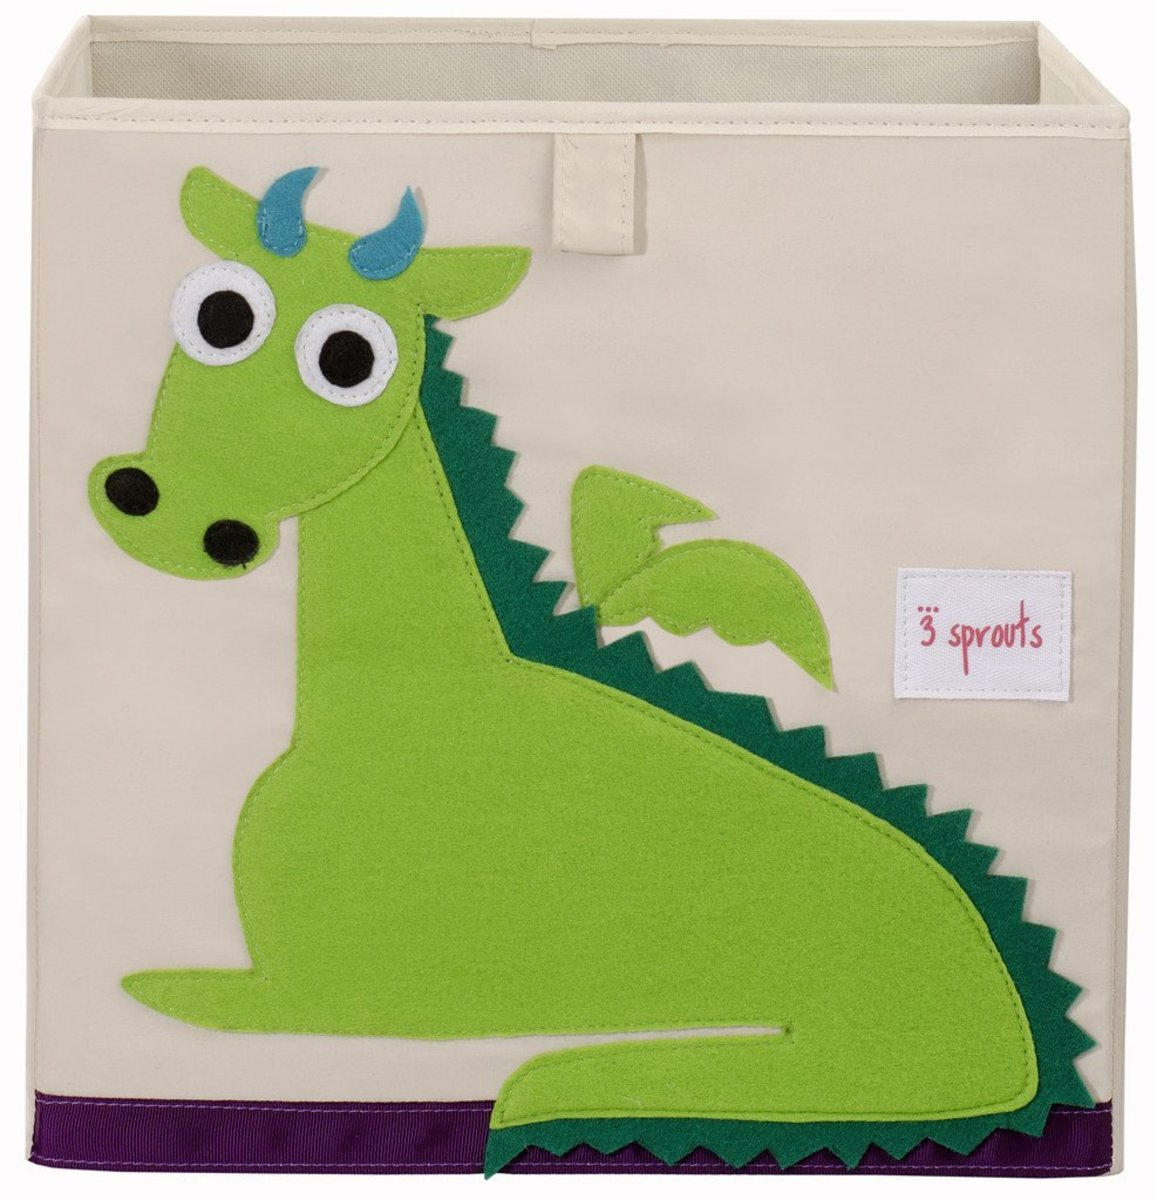 3 Sprouts Storage Box - Green Dragon